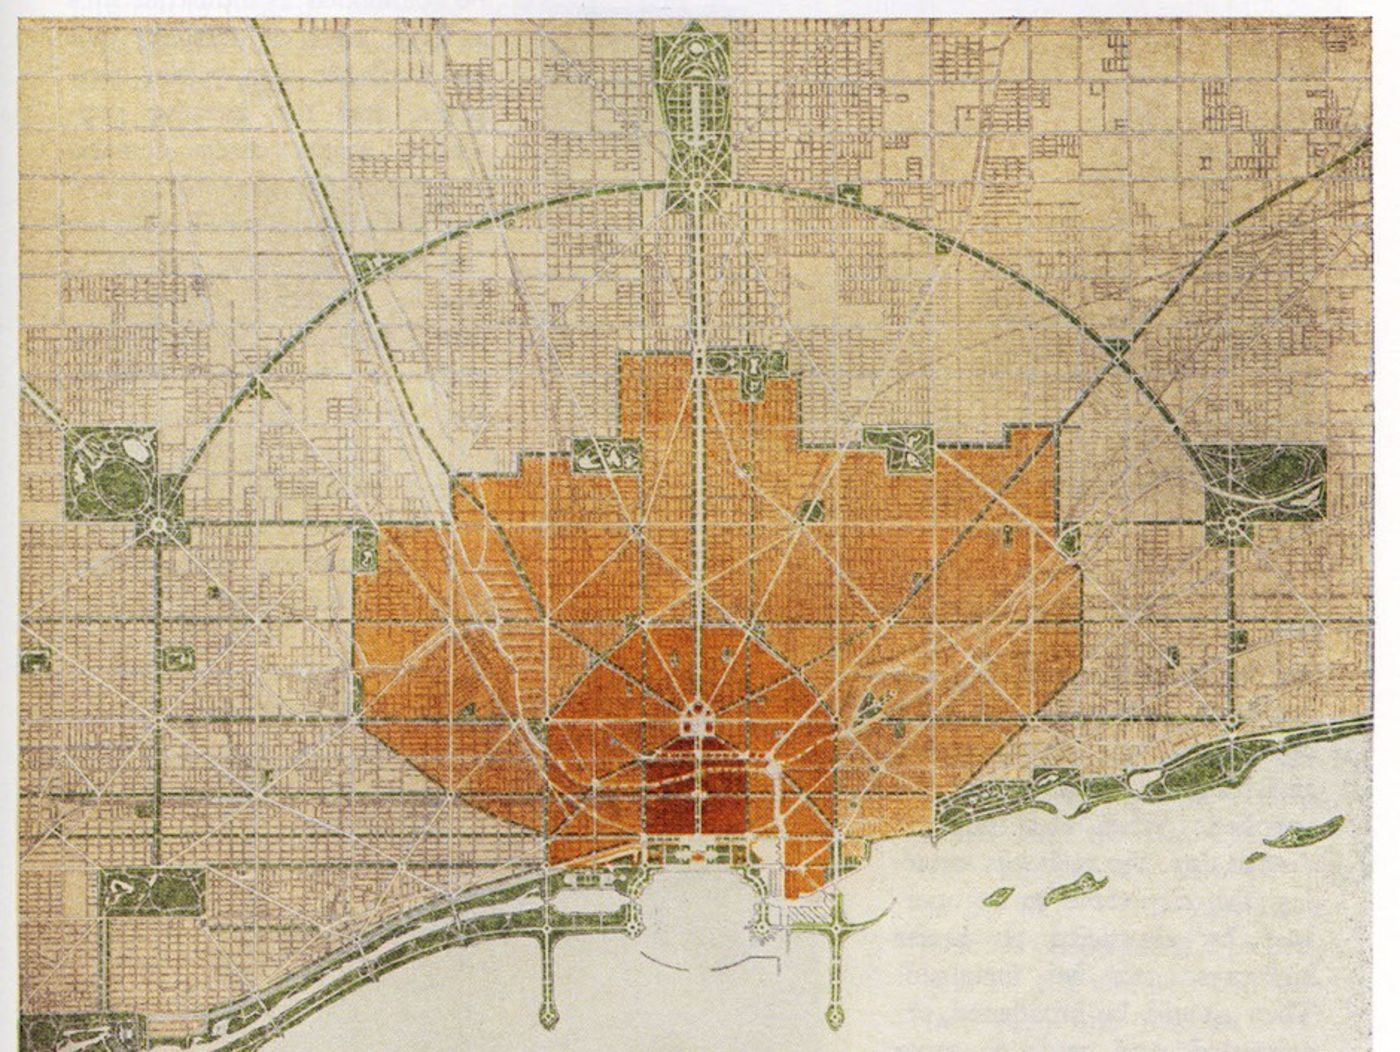 The 1909 Plan of Chicago, by Daniel Burnham and Edward H. Bennett. Plate CCCI Plan of Existing and Proposed Parks and Boulevards